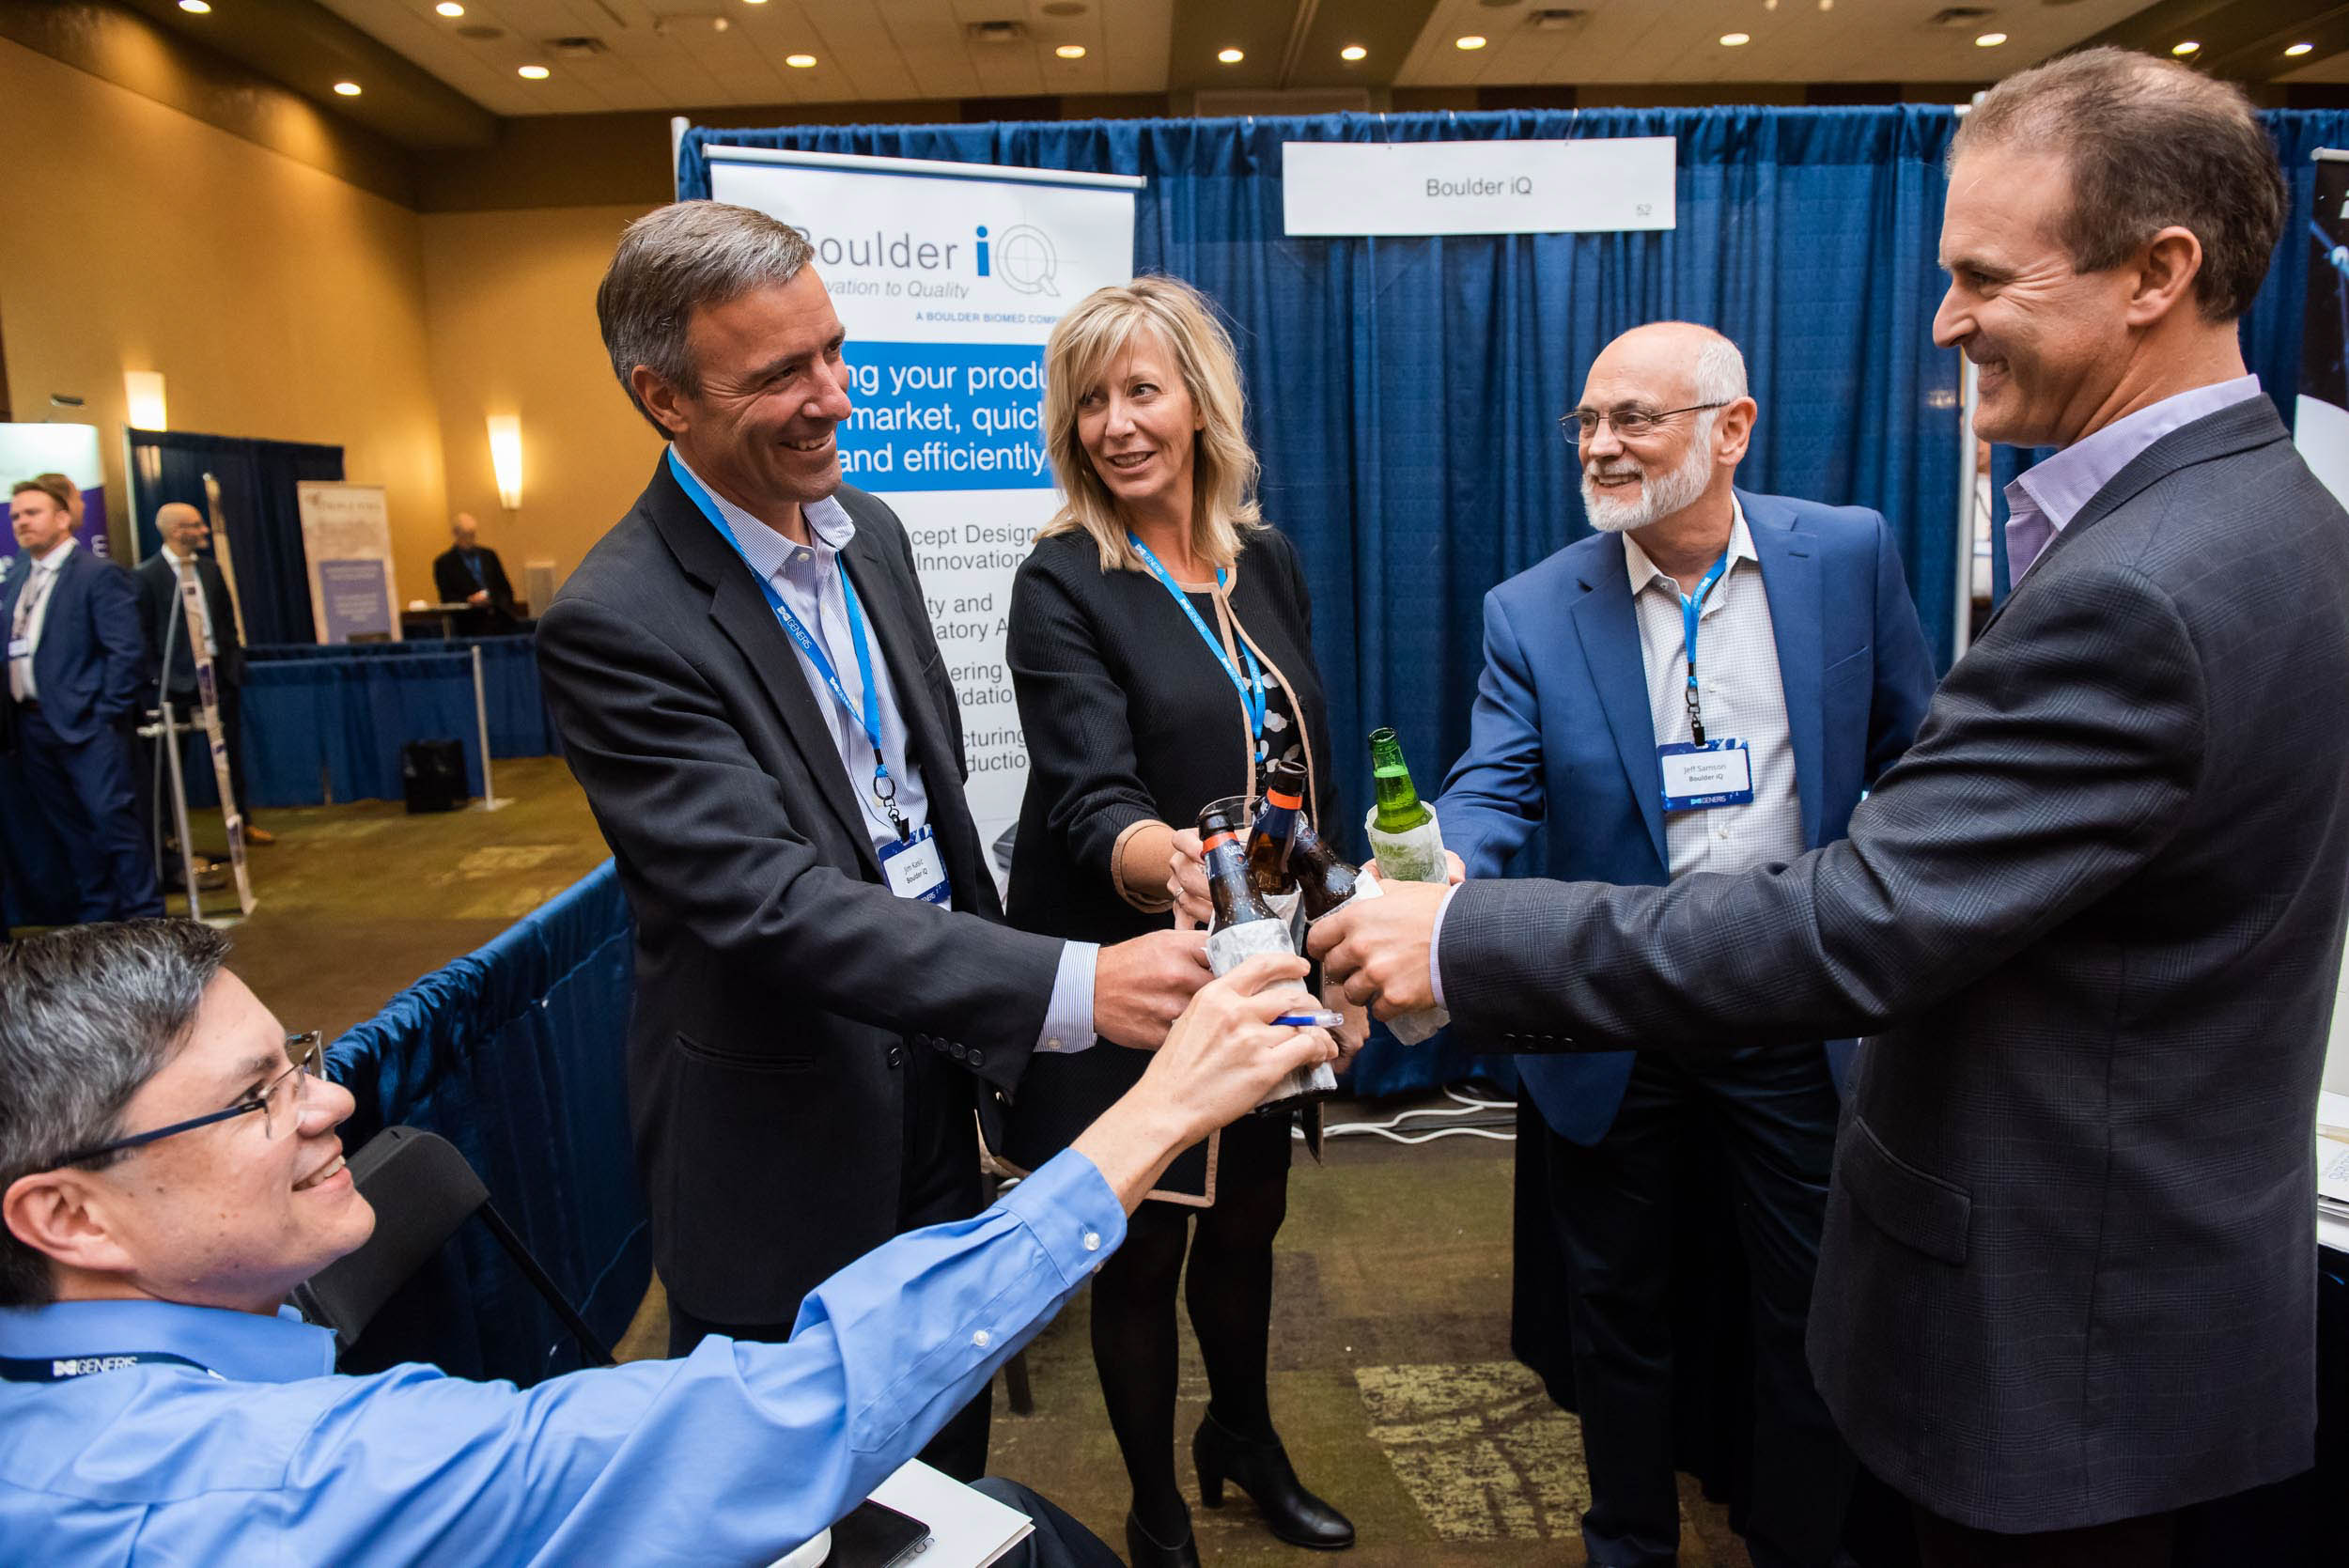 181024 - American Medical Device Summit - mark campbell photography-293_Resized_Resized.jpg